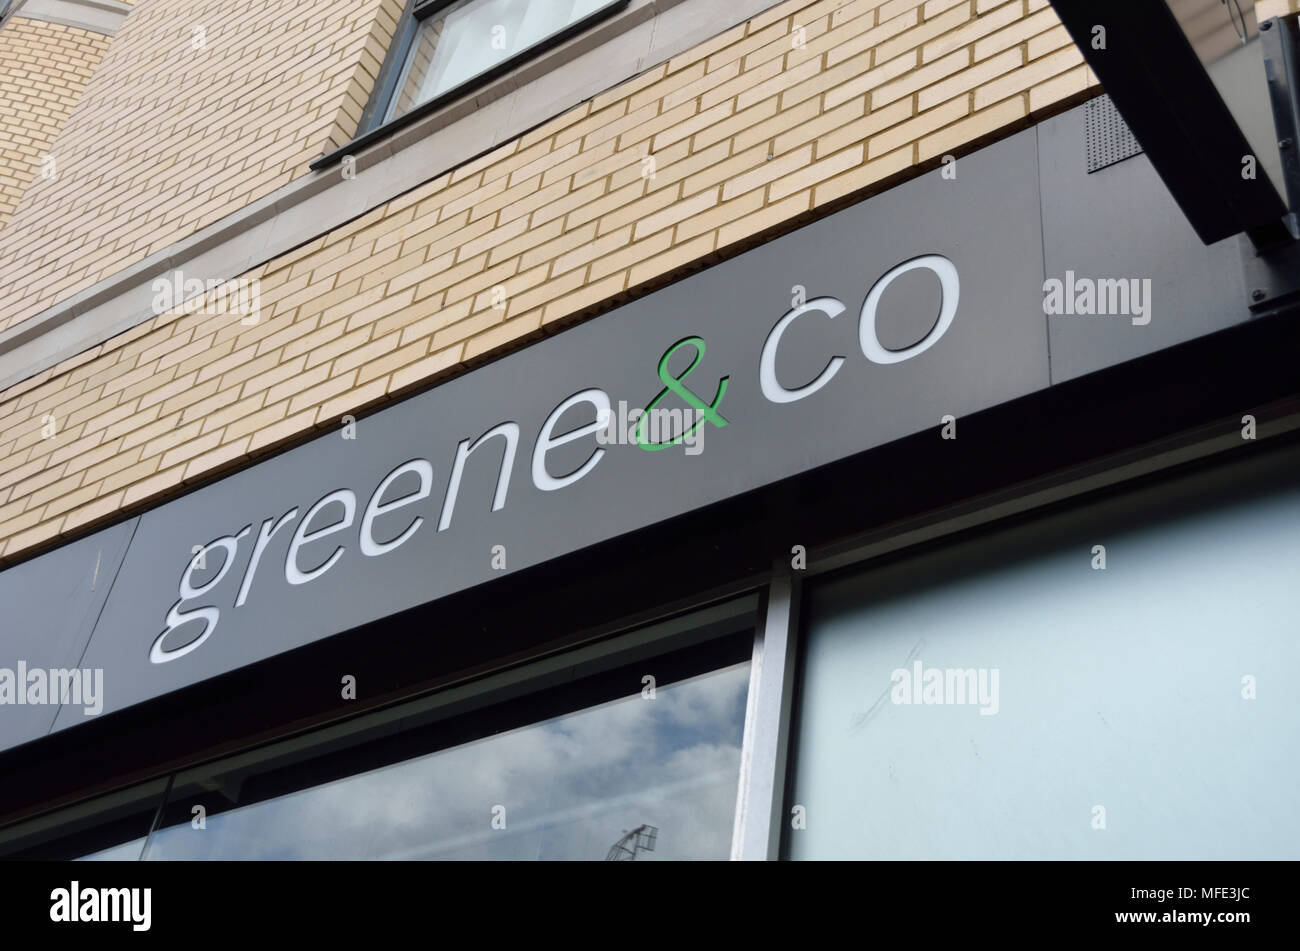 Greene and Co estate agent sign - Stock Image